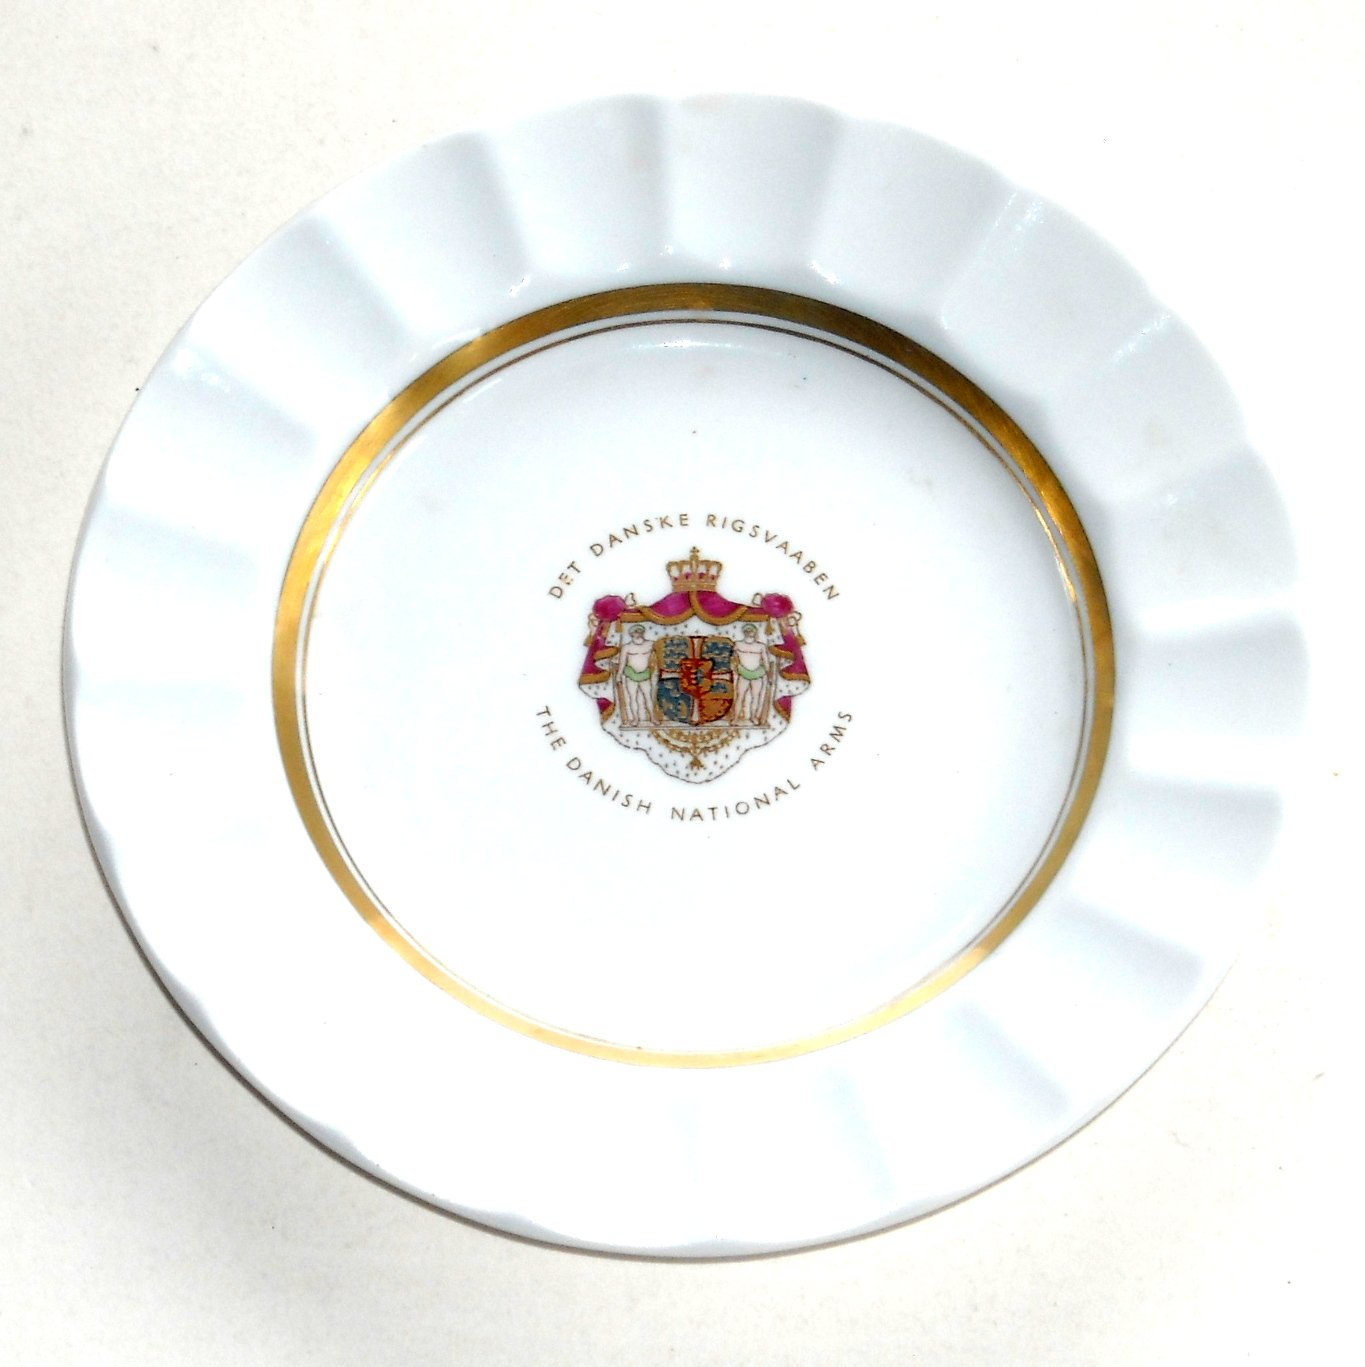 Coat of Arms Royal Copenhagen Piece of Denmark Pin Dish Small Plate